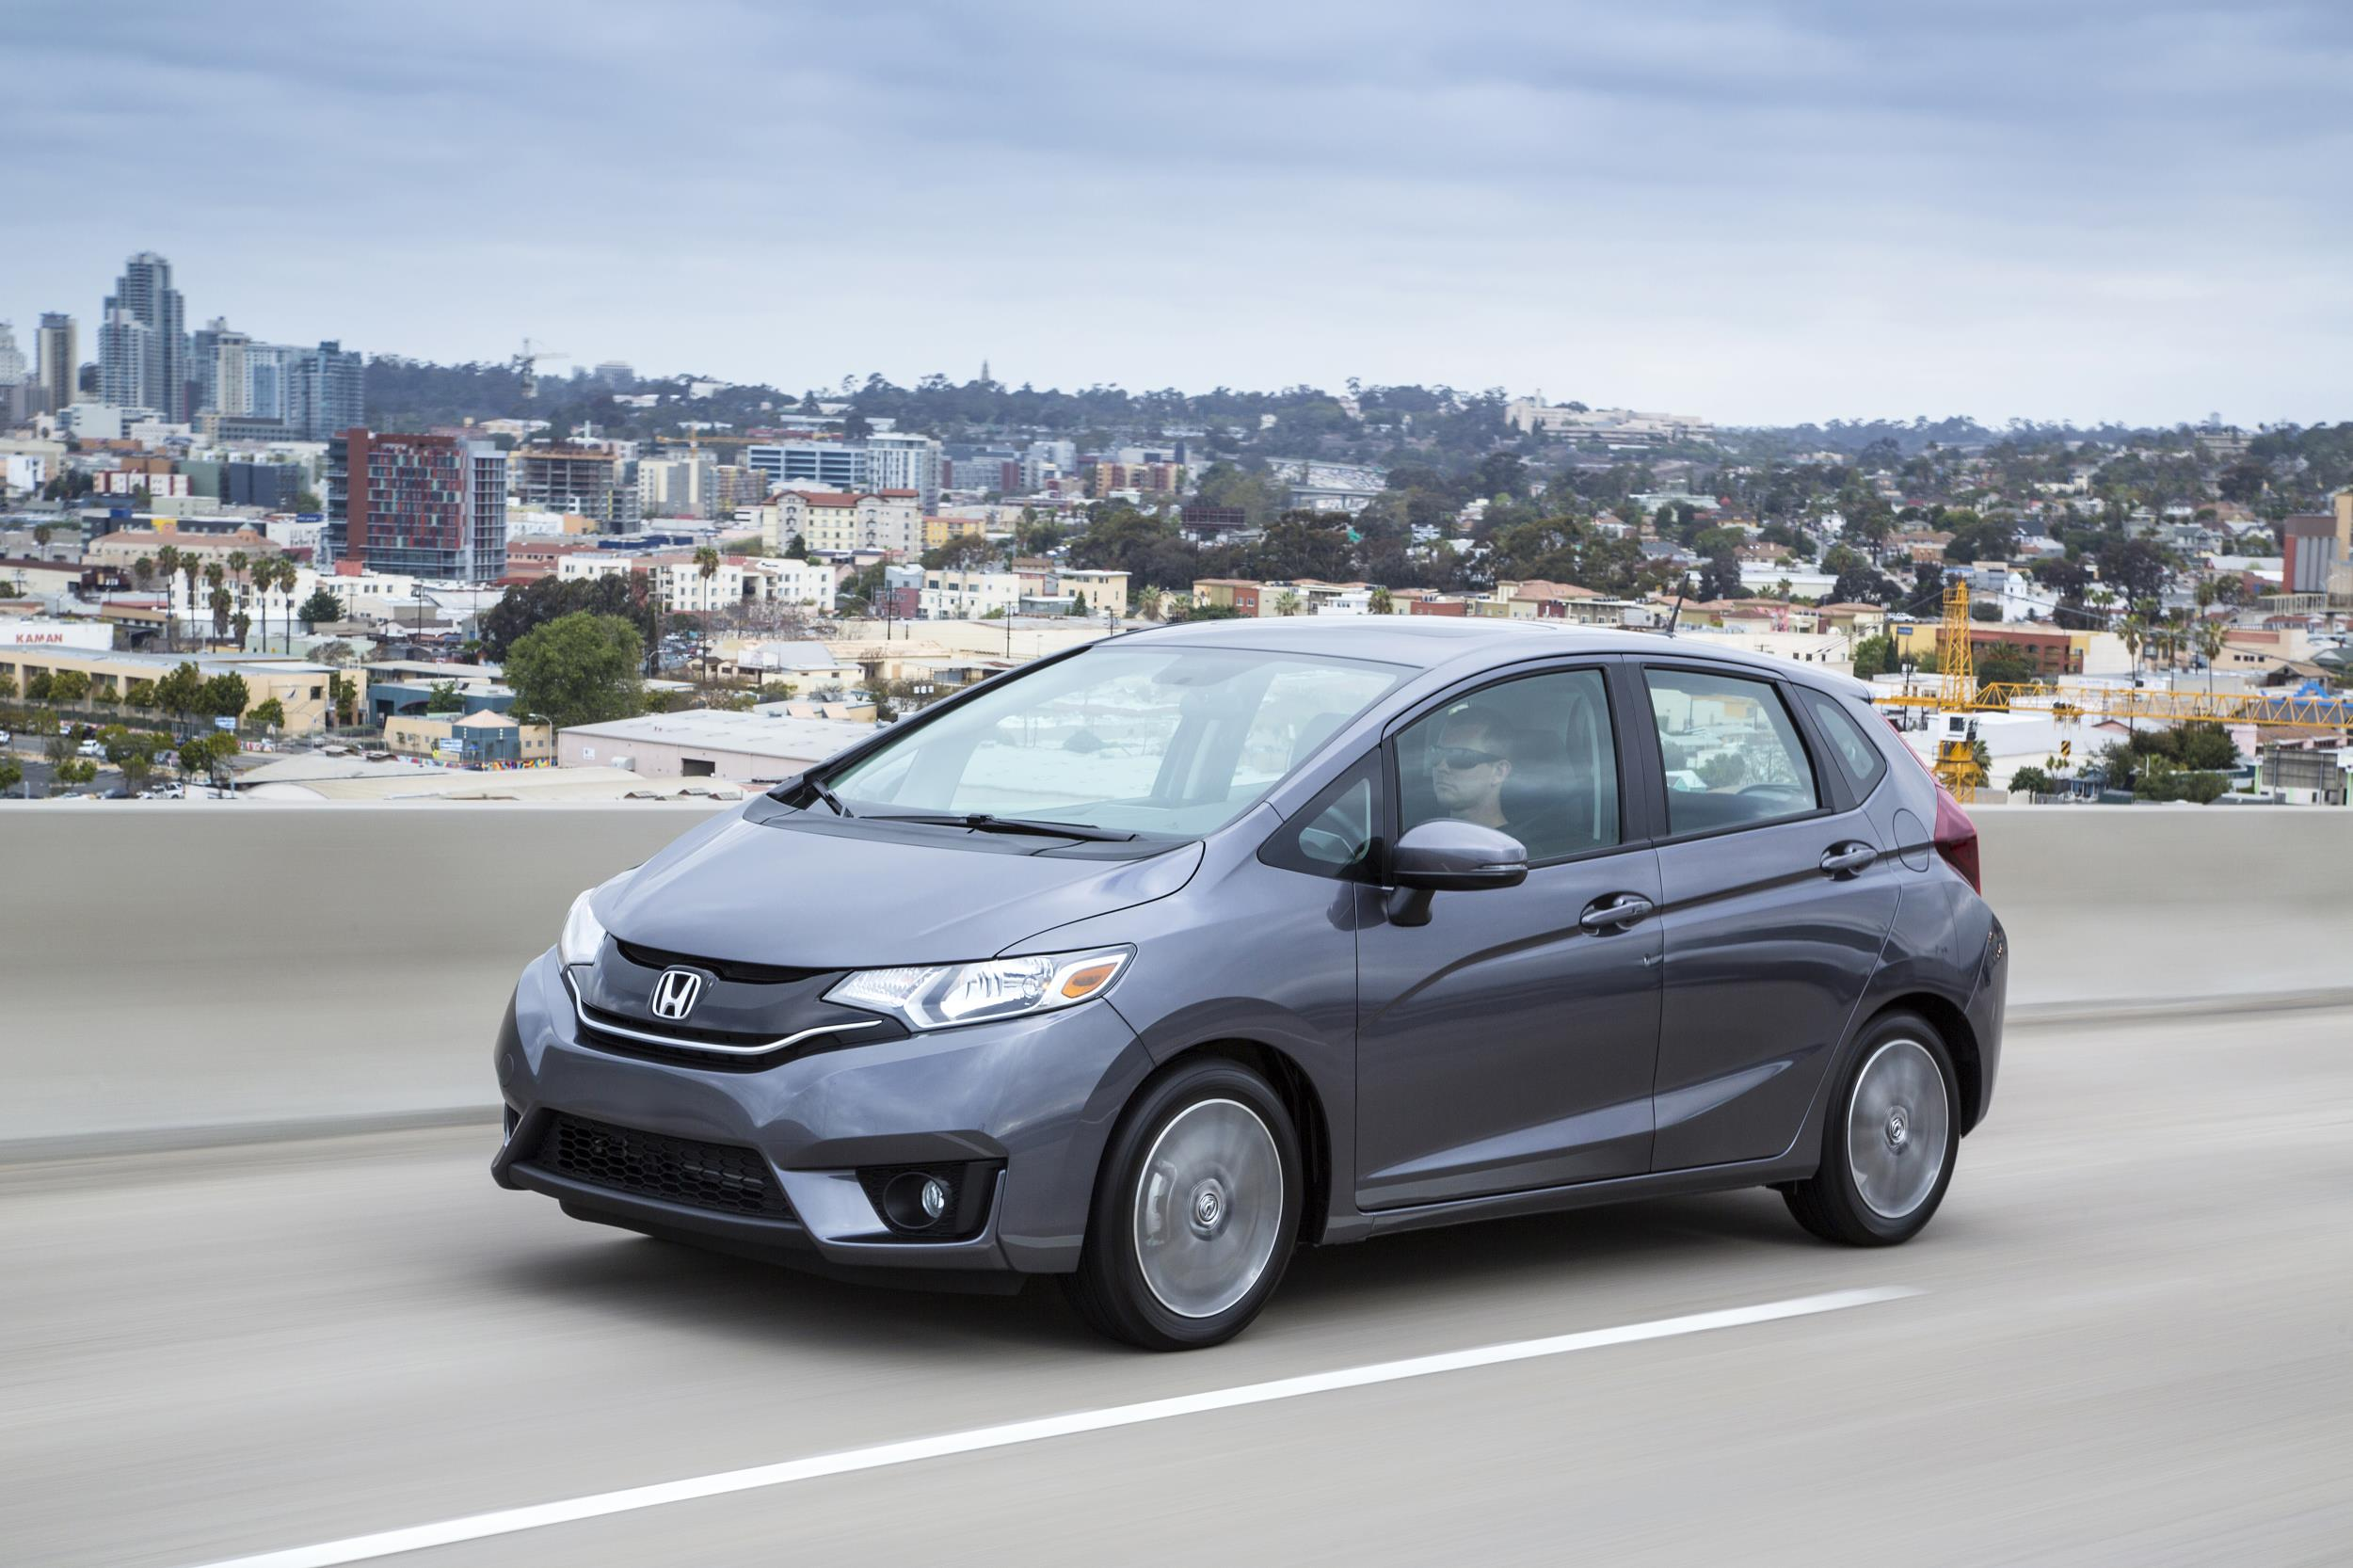 2017 Honda Fit Priced From $16,825 - autoevolution